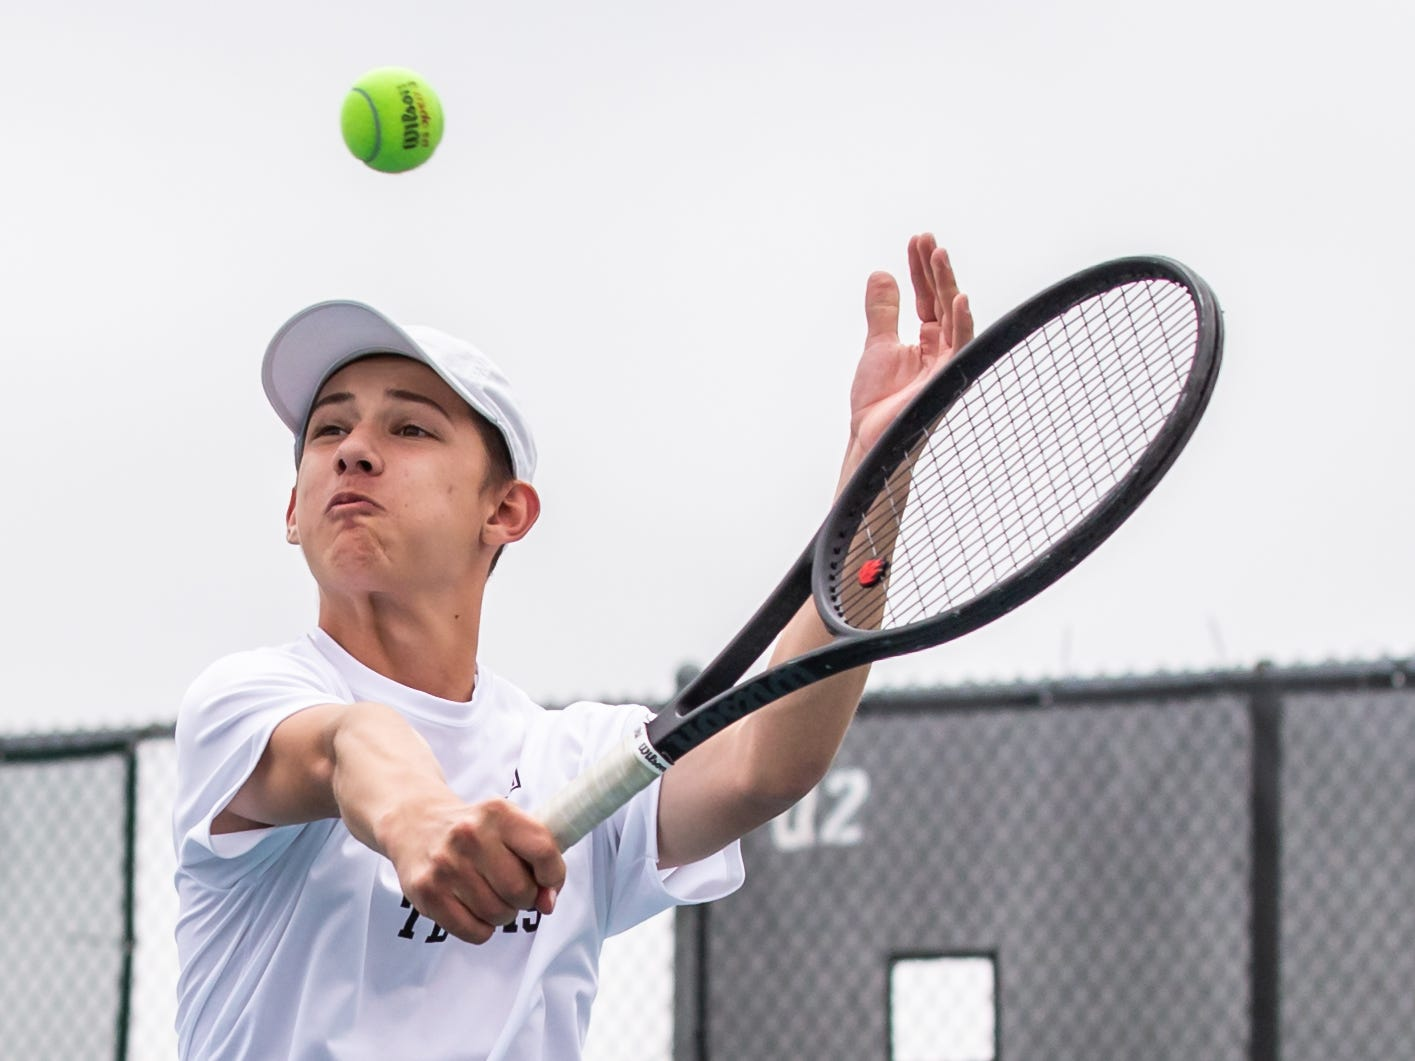 Menomonee Falls No. 1 doubles player Simon Blowers slices a backhand return during the WIAA Boys Tennis Sectional at Waukesha South on Wednesday, May 22, 2019.